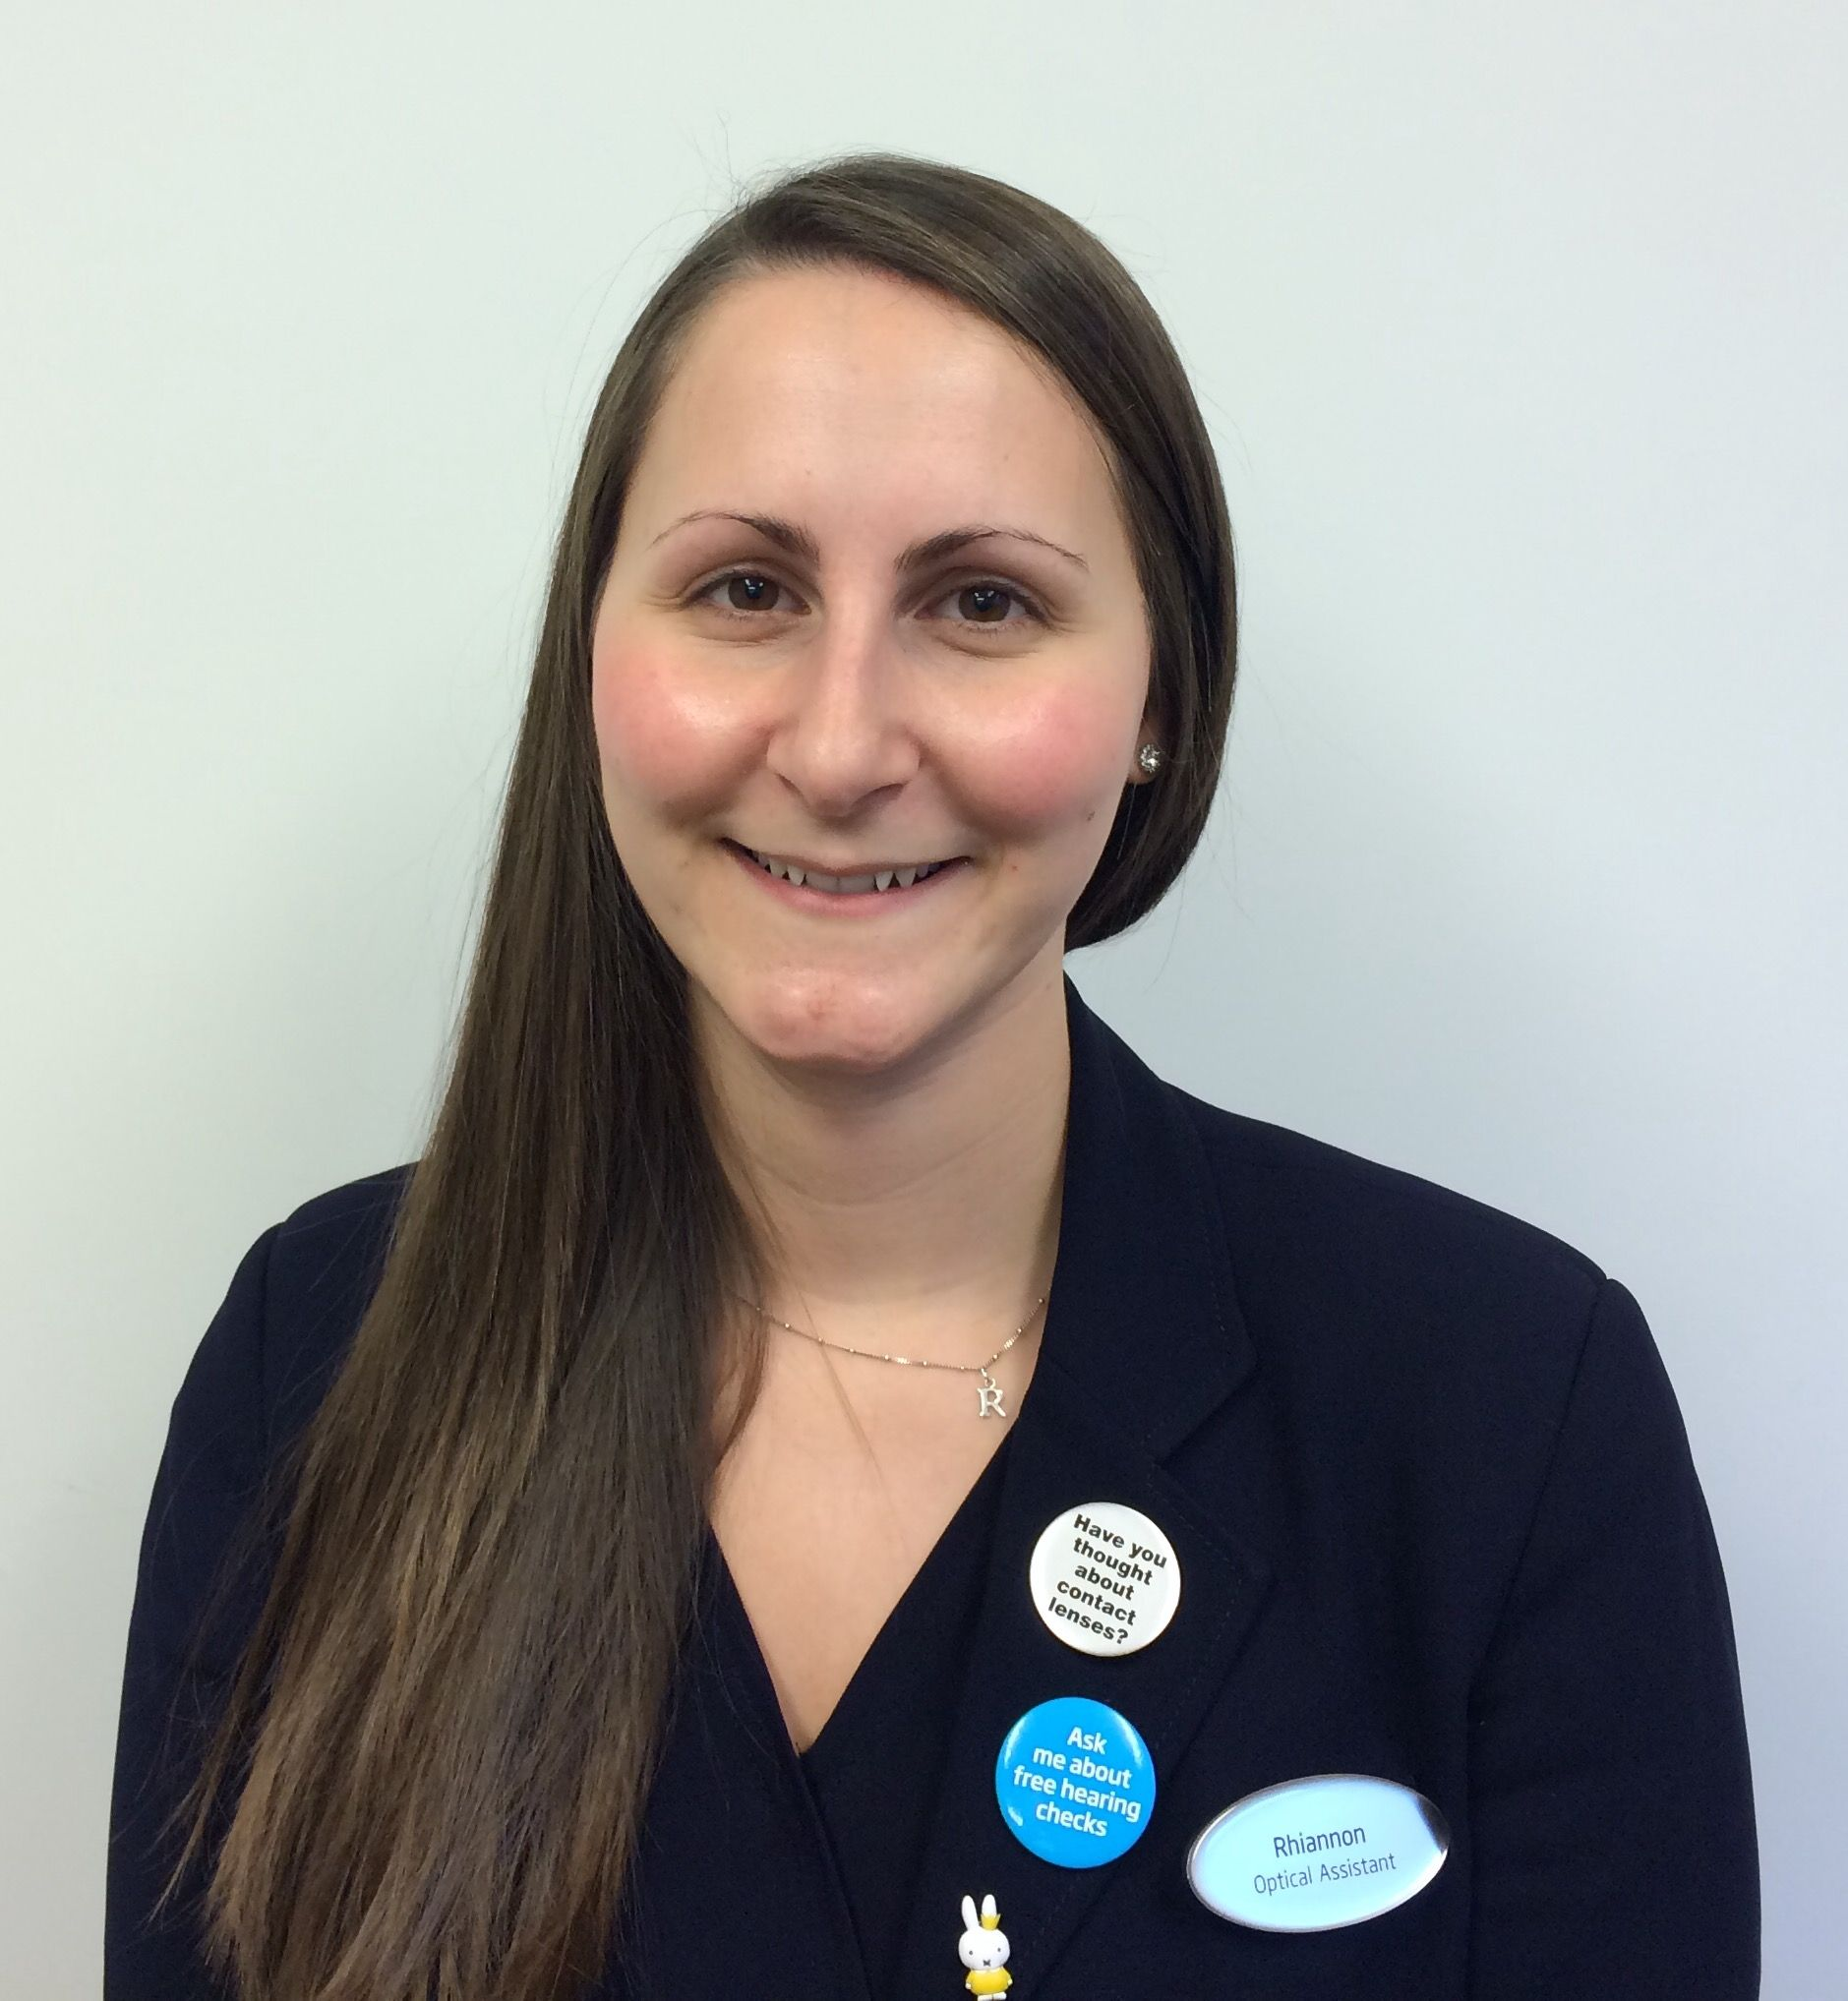 Rhiannon Stracey, in store administrator and optical assistant at Specsavers Worthing